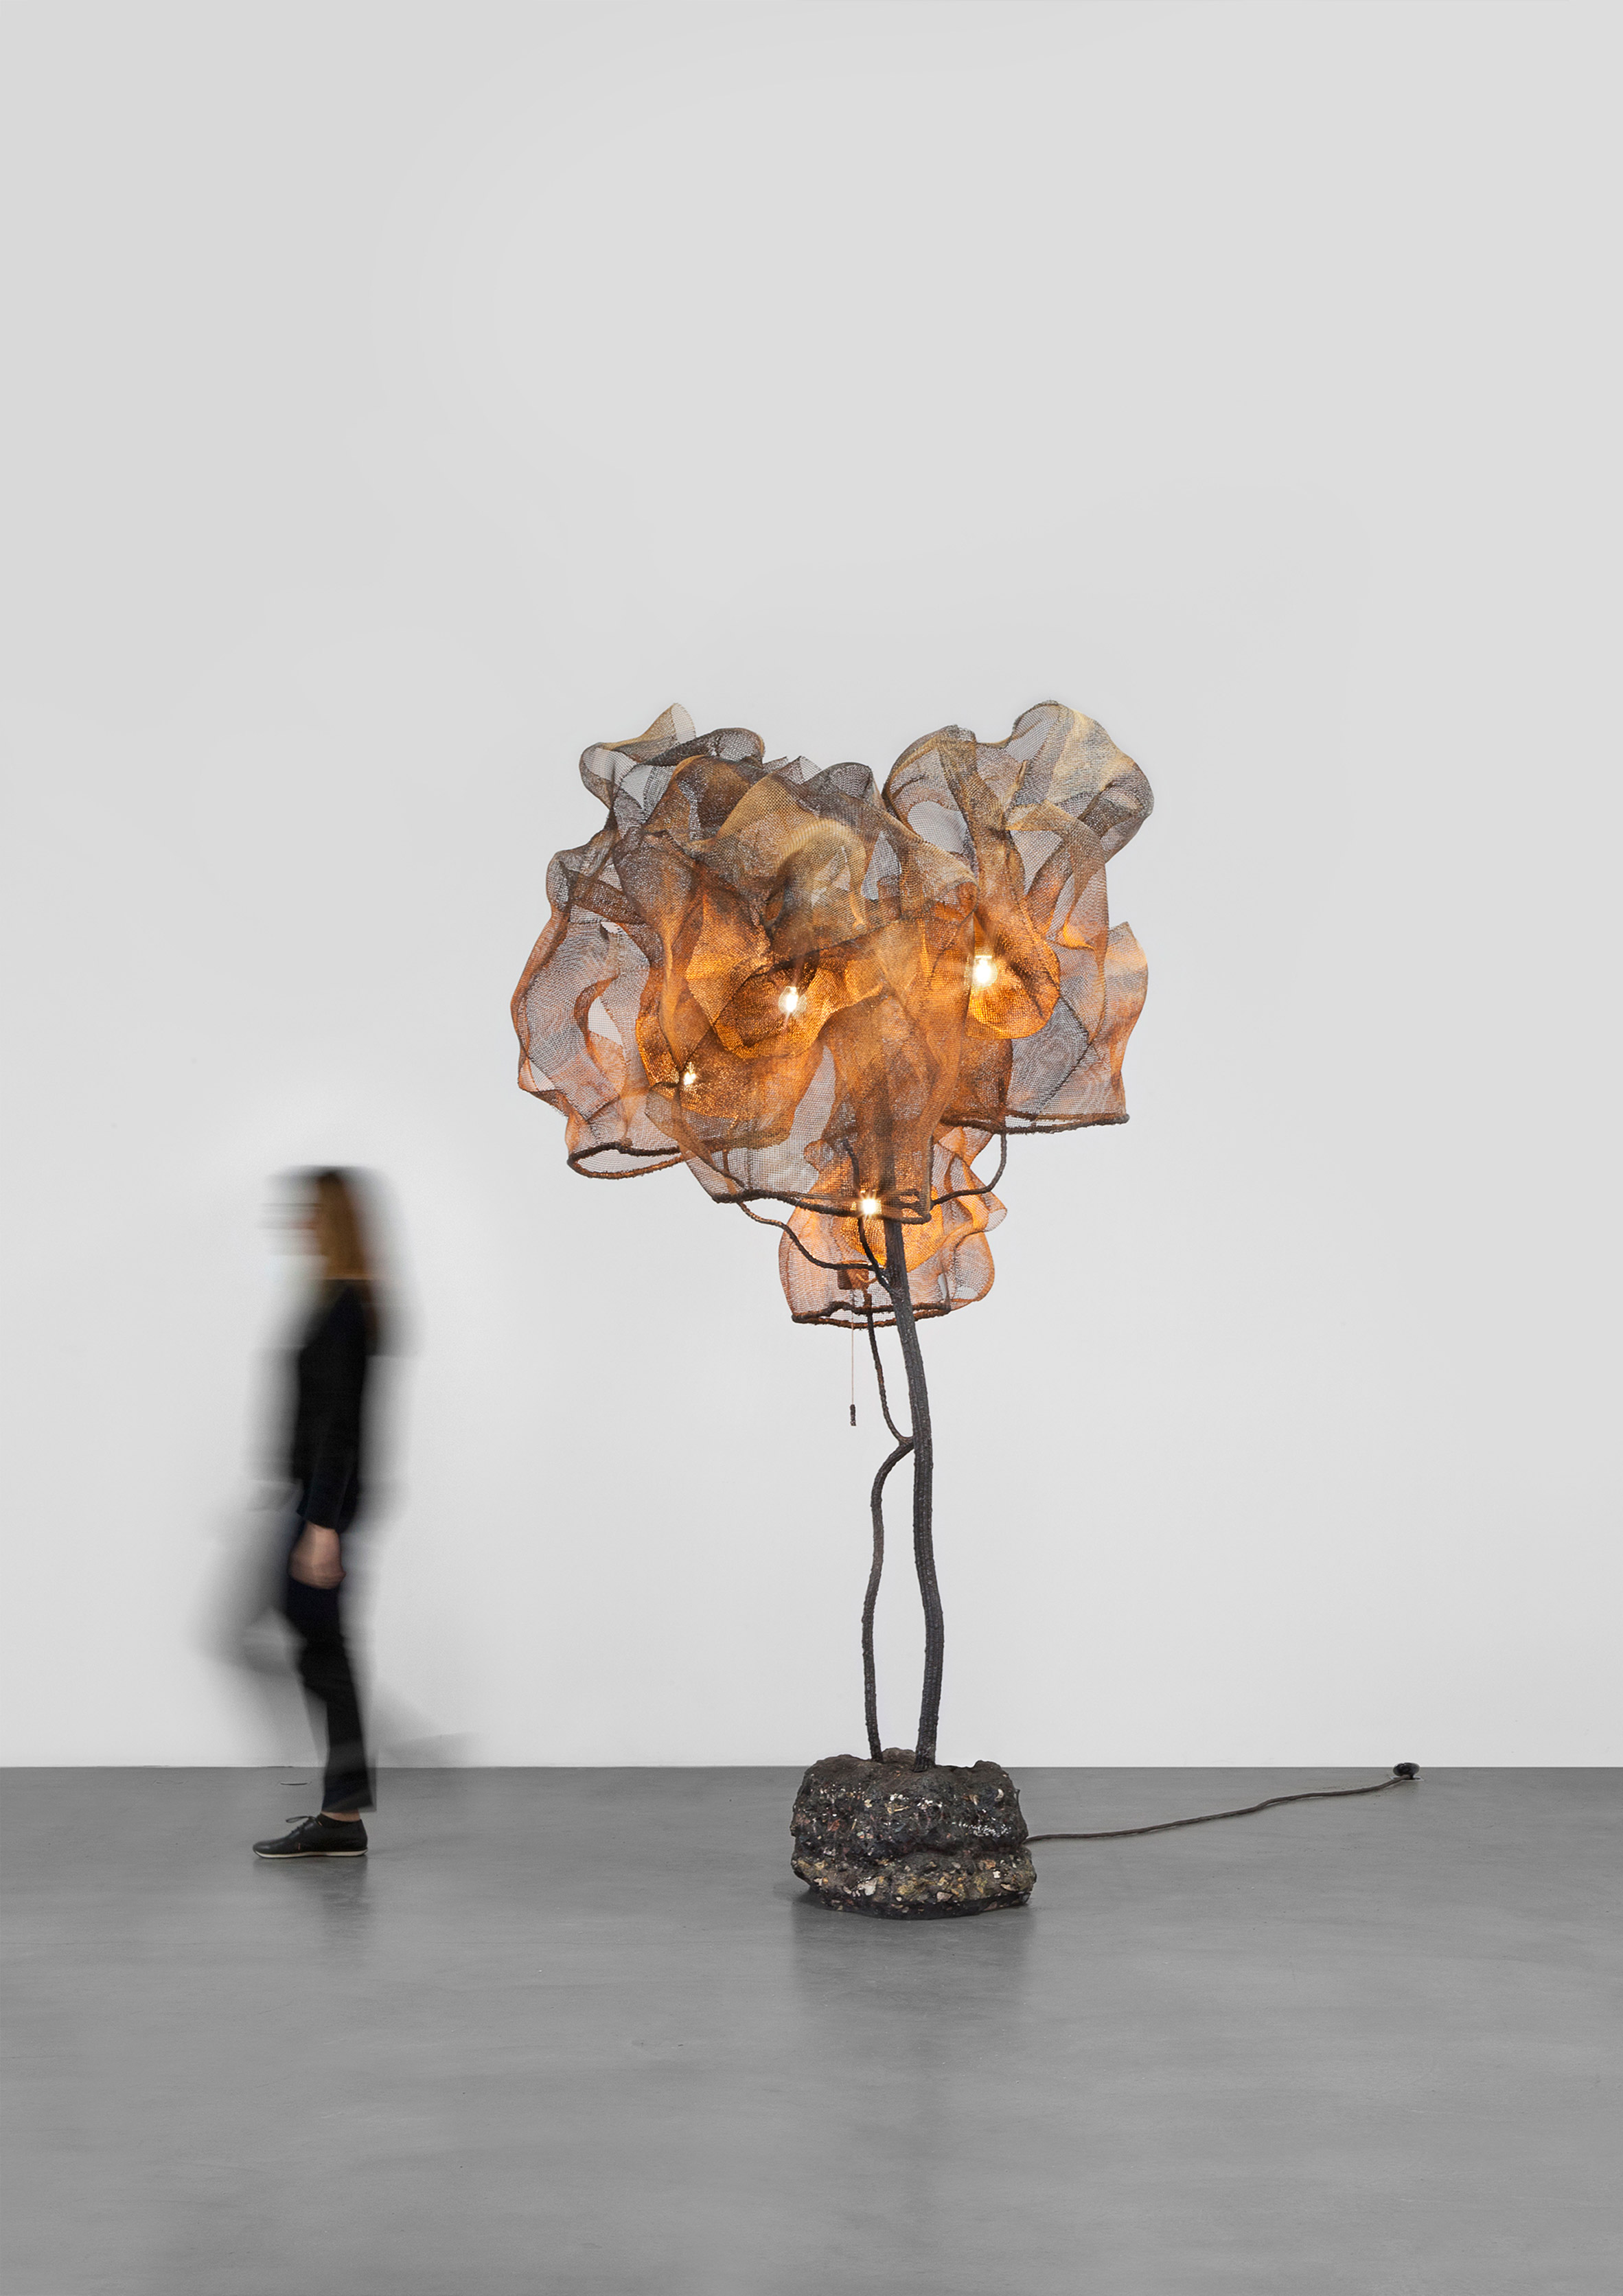 Nacho Carbonell fills Paris gallery with giant cocooned lamps